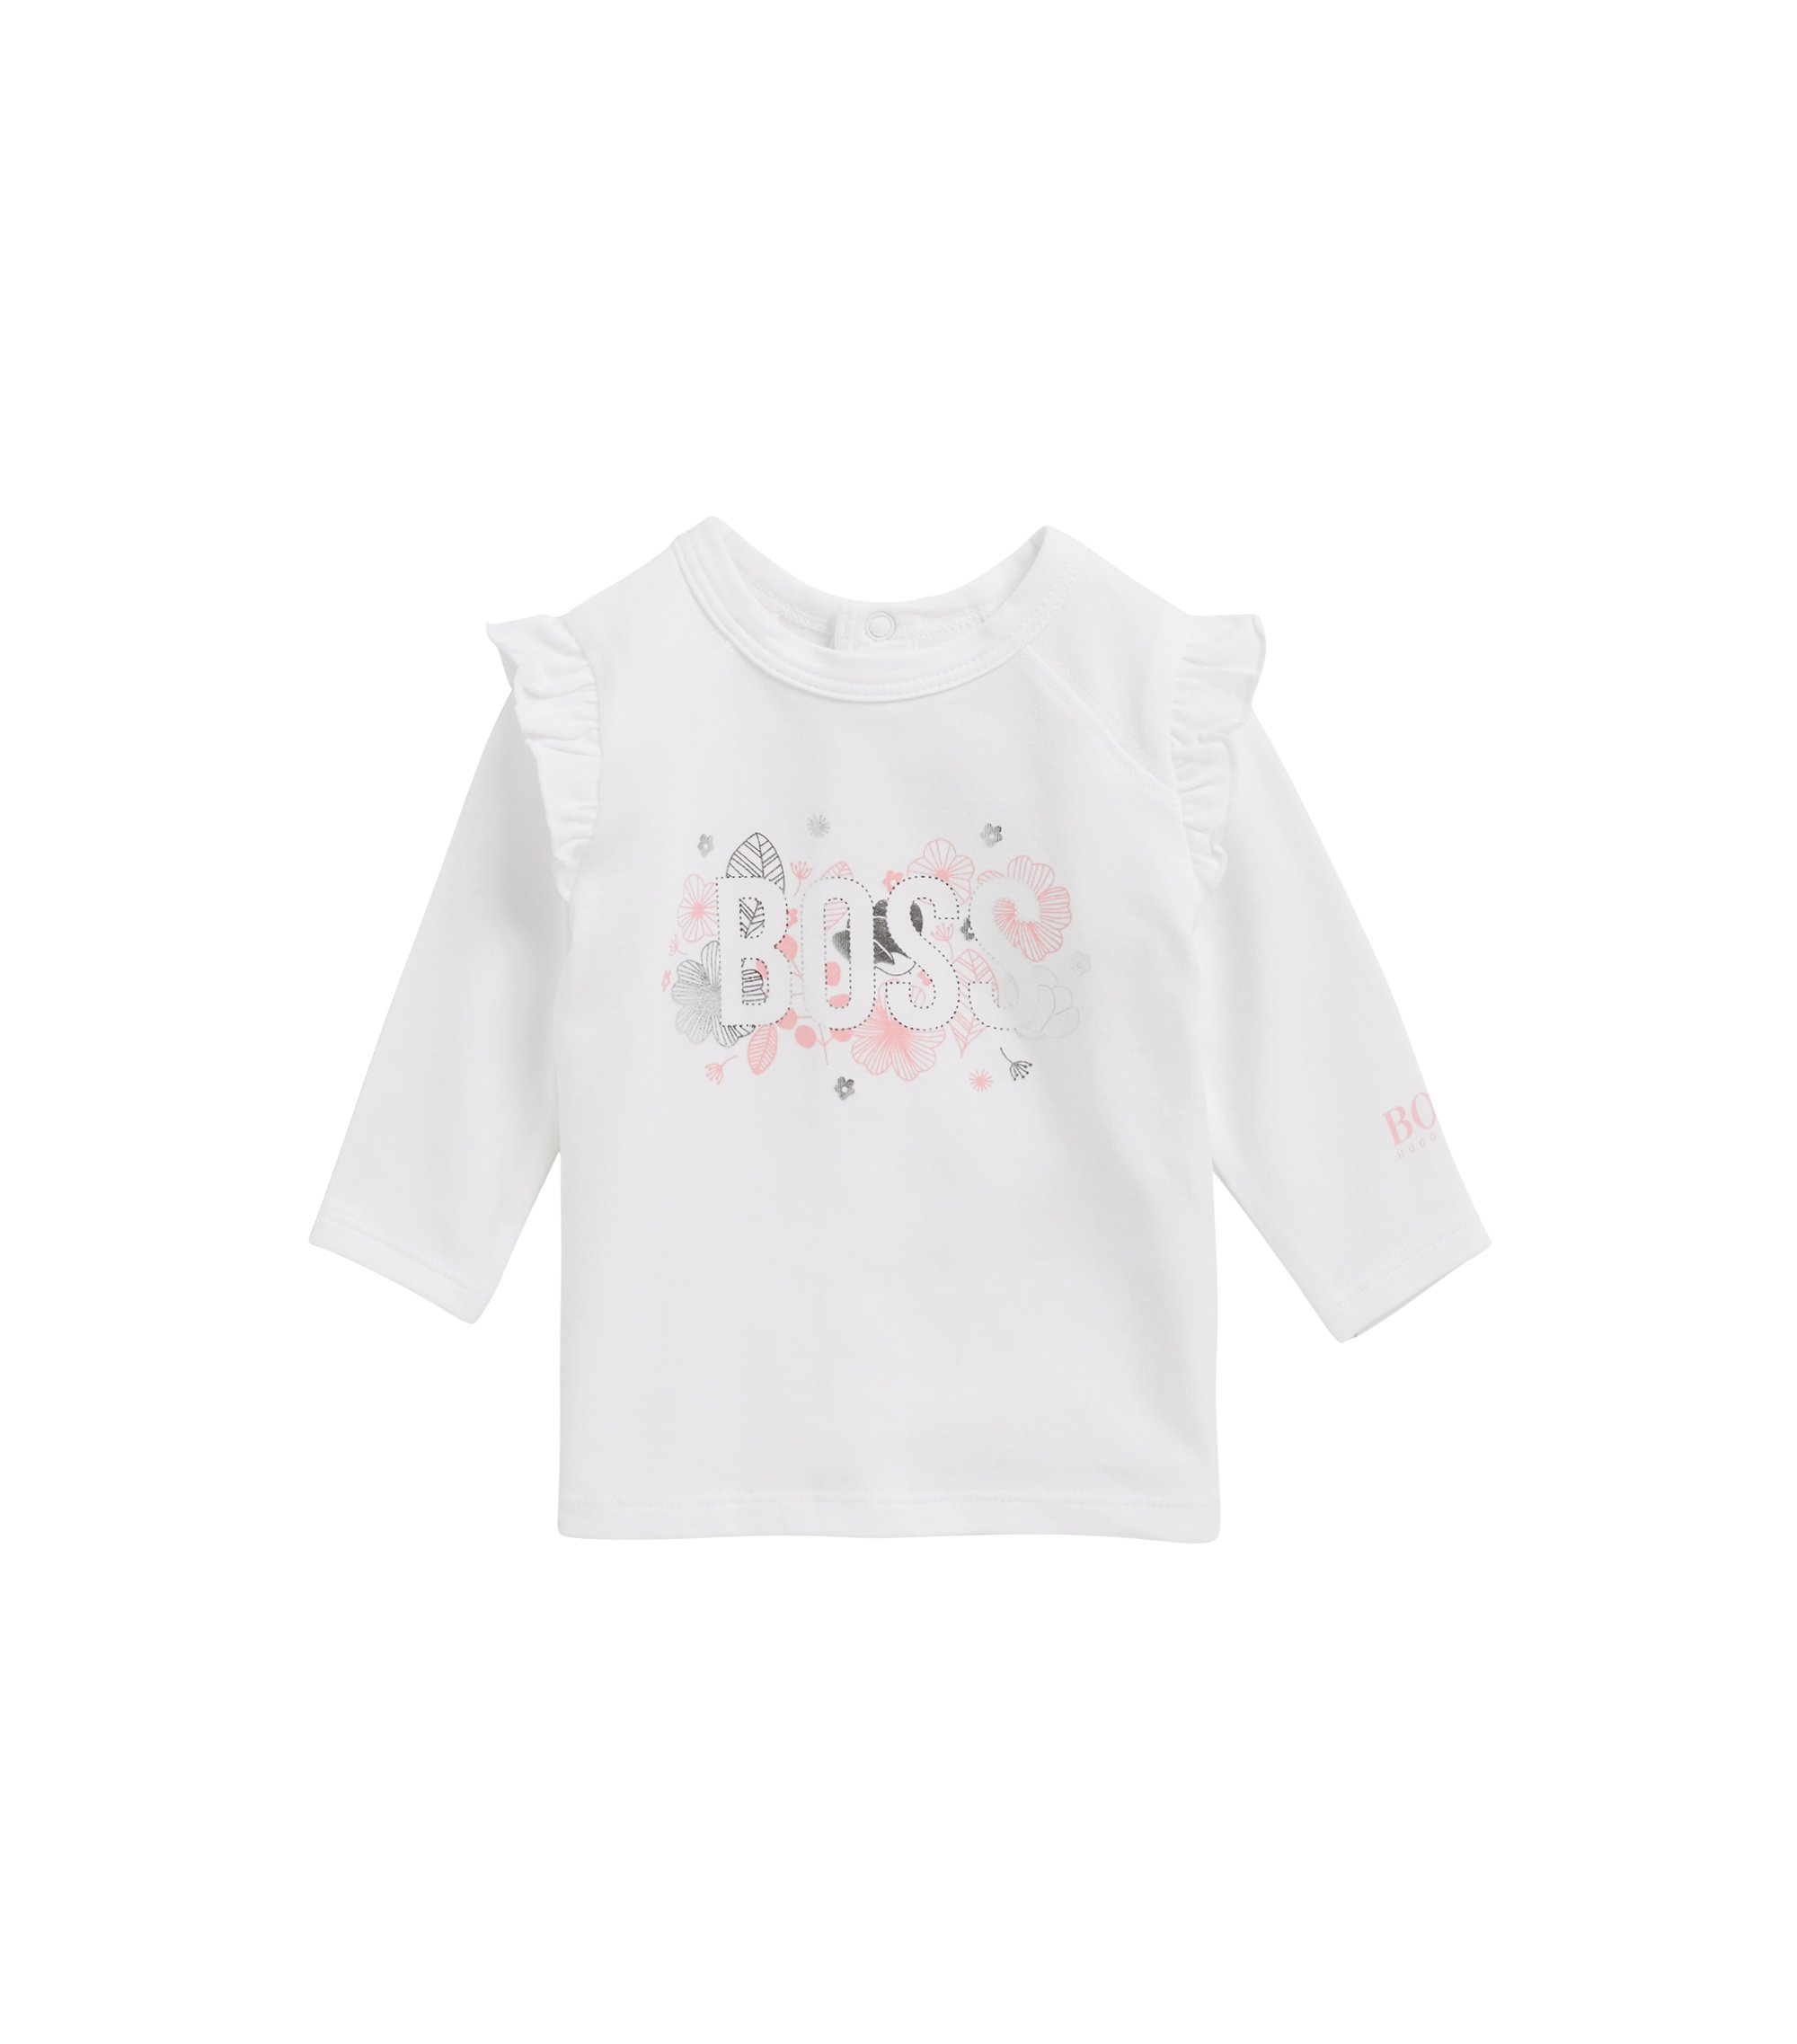 Baby girl logo-print T-shirt in stretch cotton jersey, White